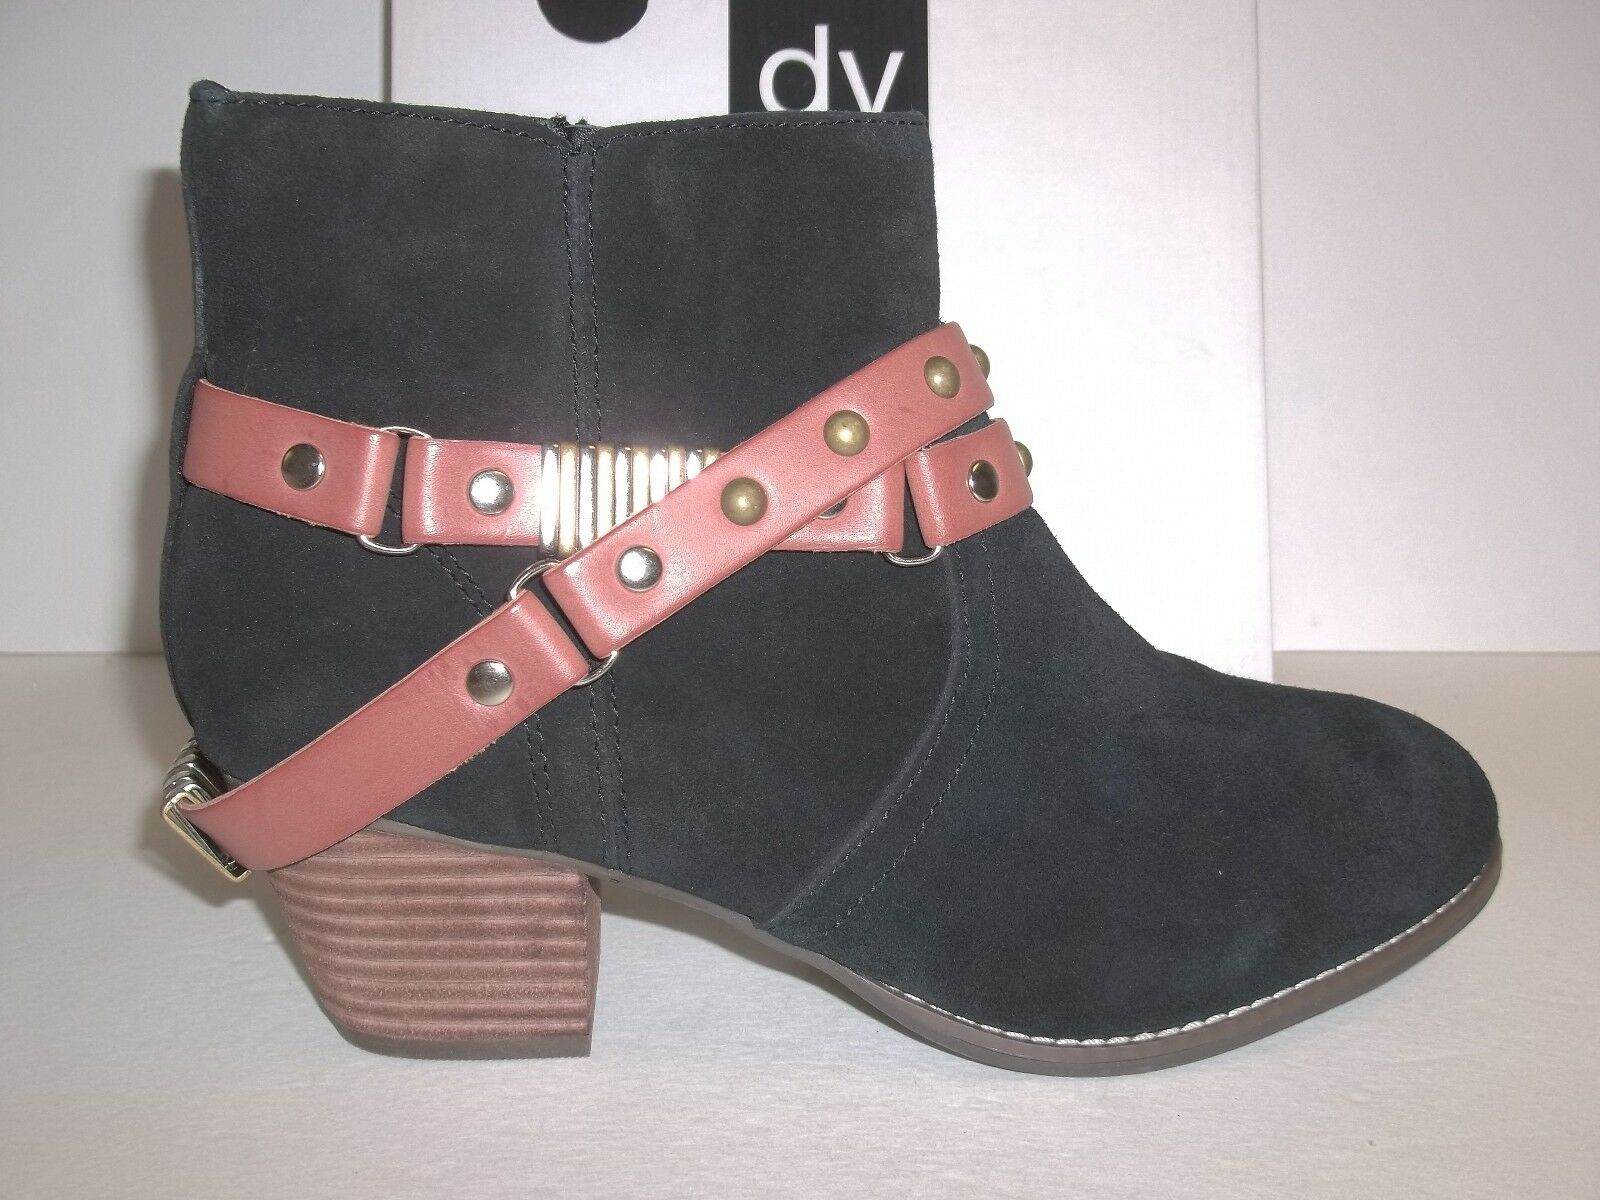 Dolce Vita DV Size 7.5 M Jacy Black Suede Ankle Boots New Womens Shoes